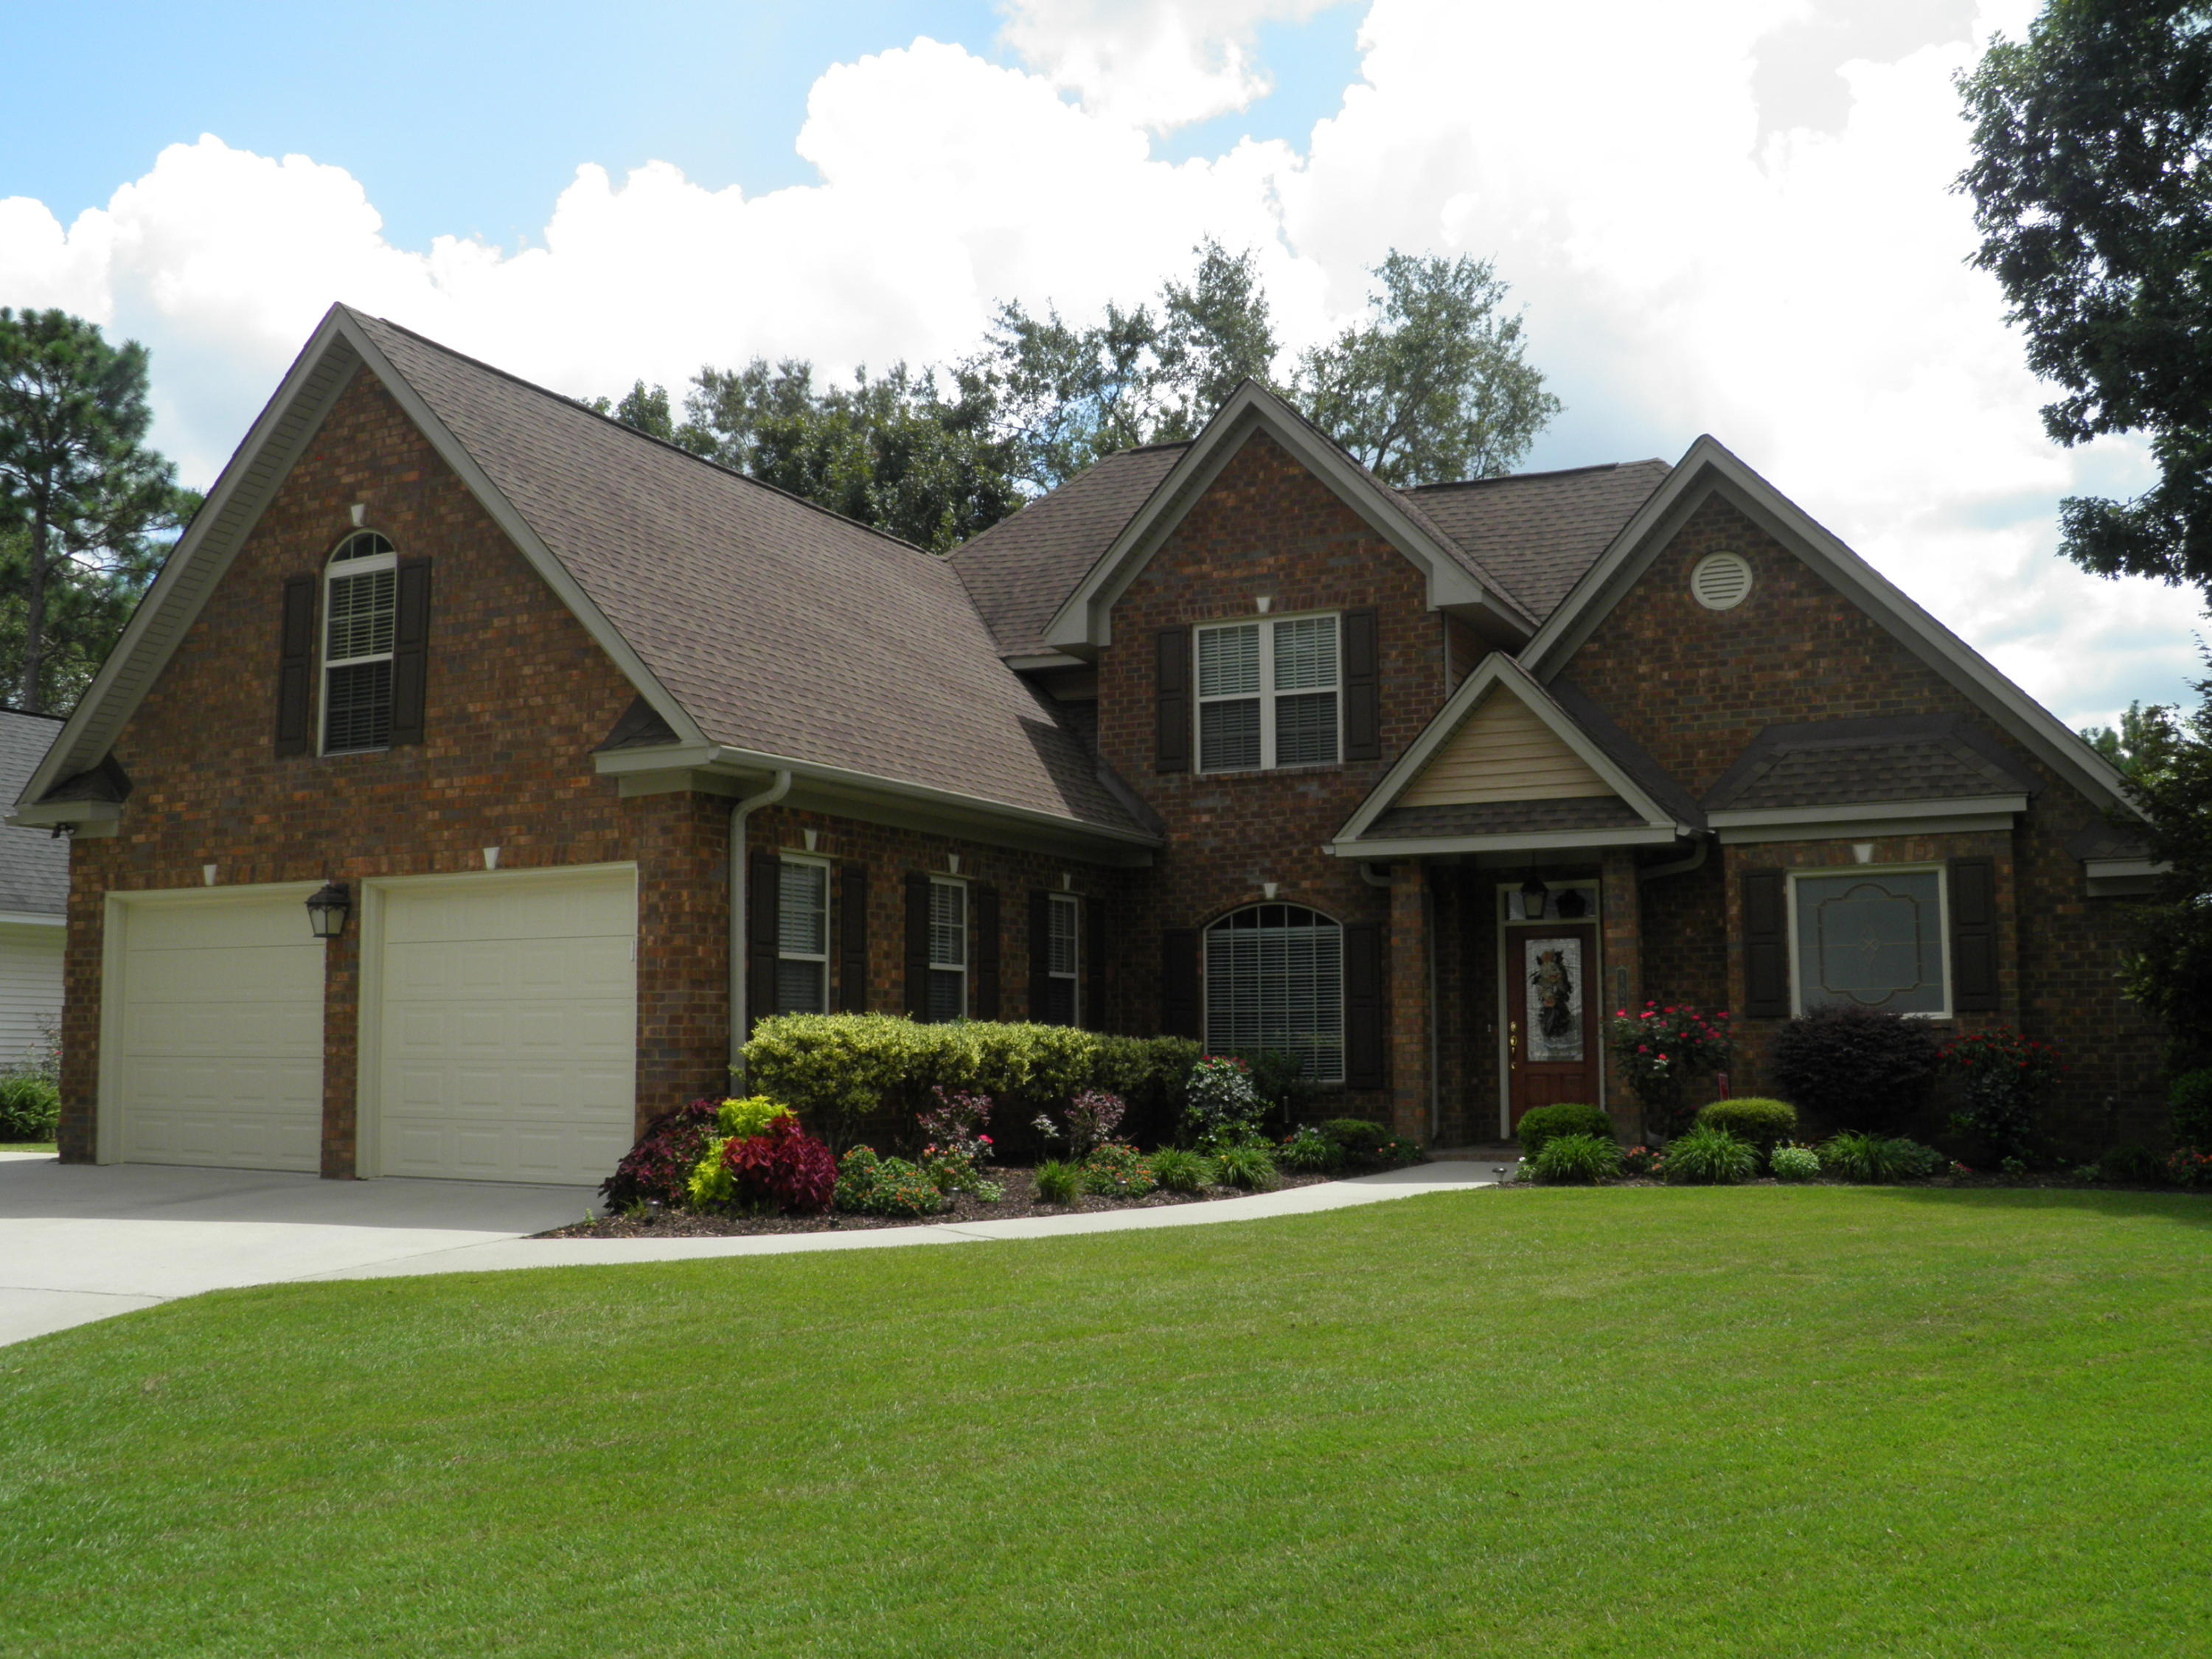 Photo of 107 Sutton Ln, Goose Creek, SC 29445